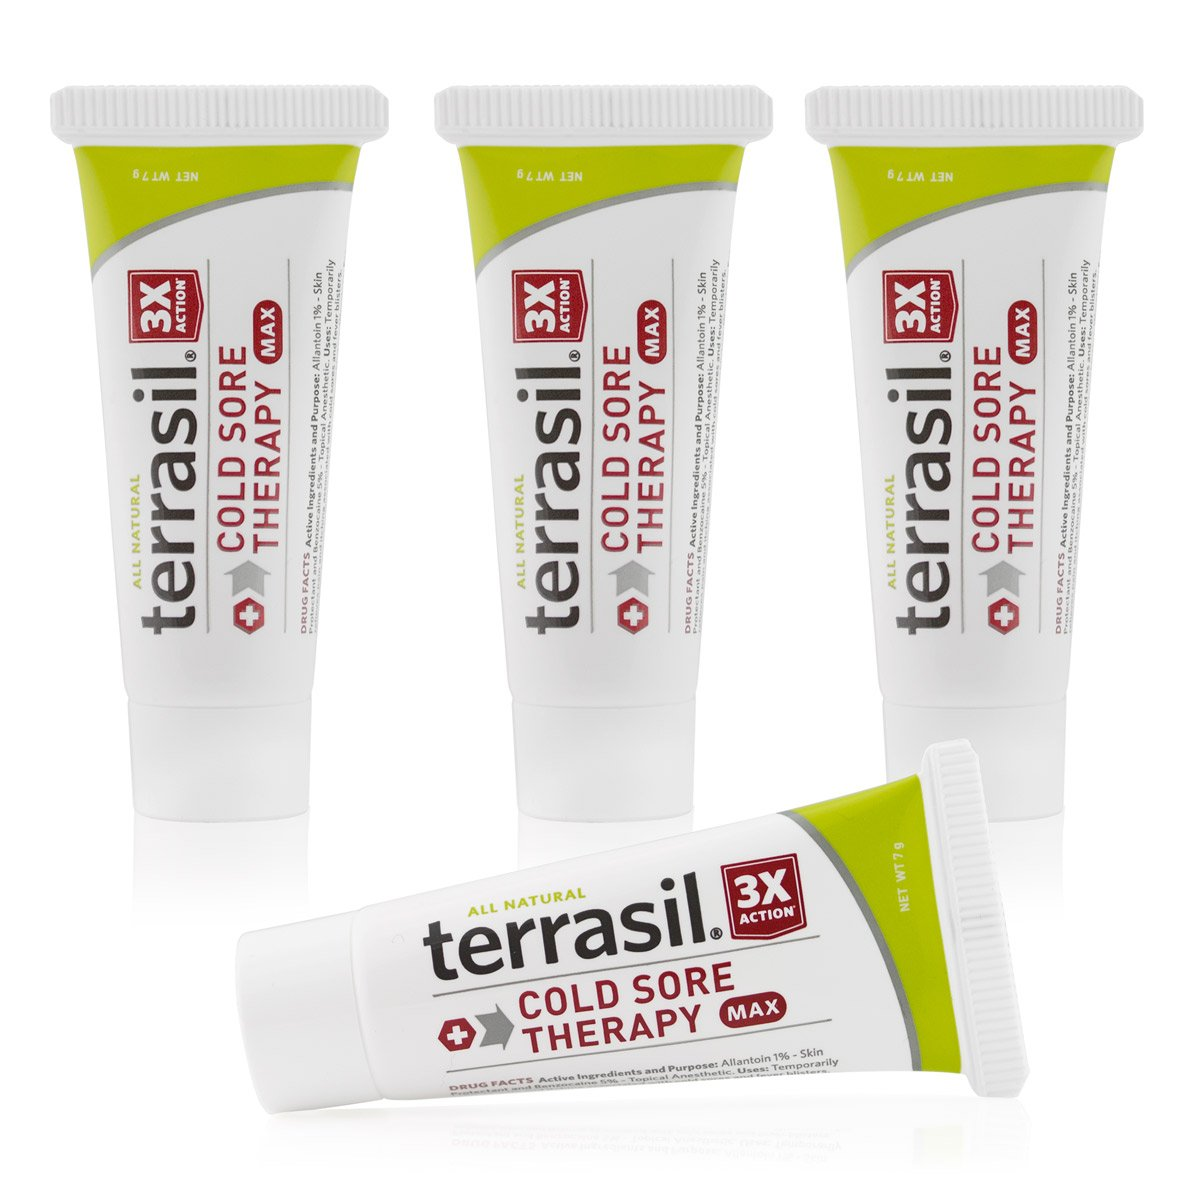 Cold Sore Treatment Maximum Strength- Speeds Healing and Stops Pain Fast All Natural for Fever Blister and Lesions from Cold Sores by Terrasil (7g tube 4 pack)